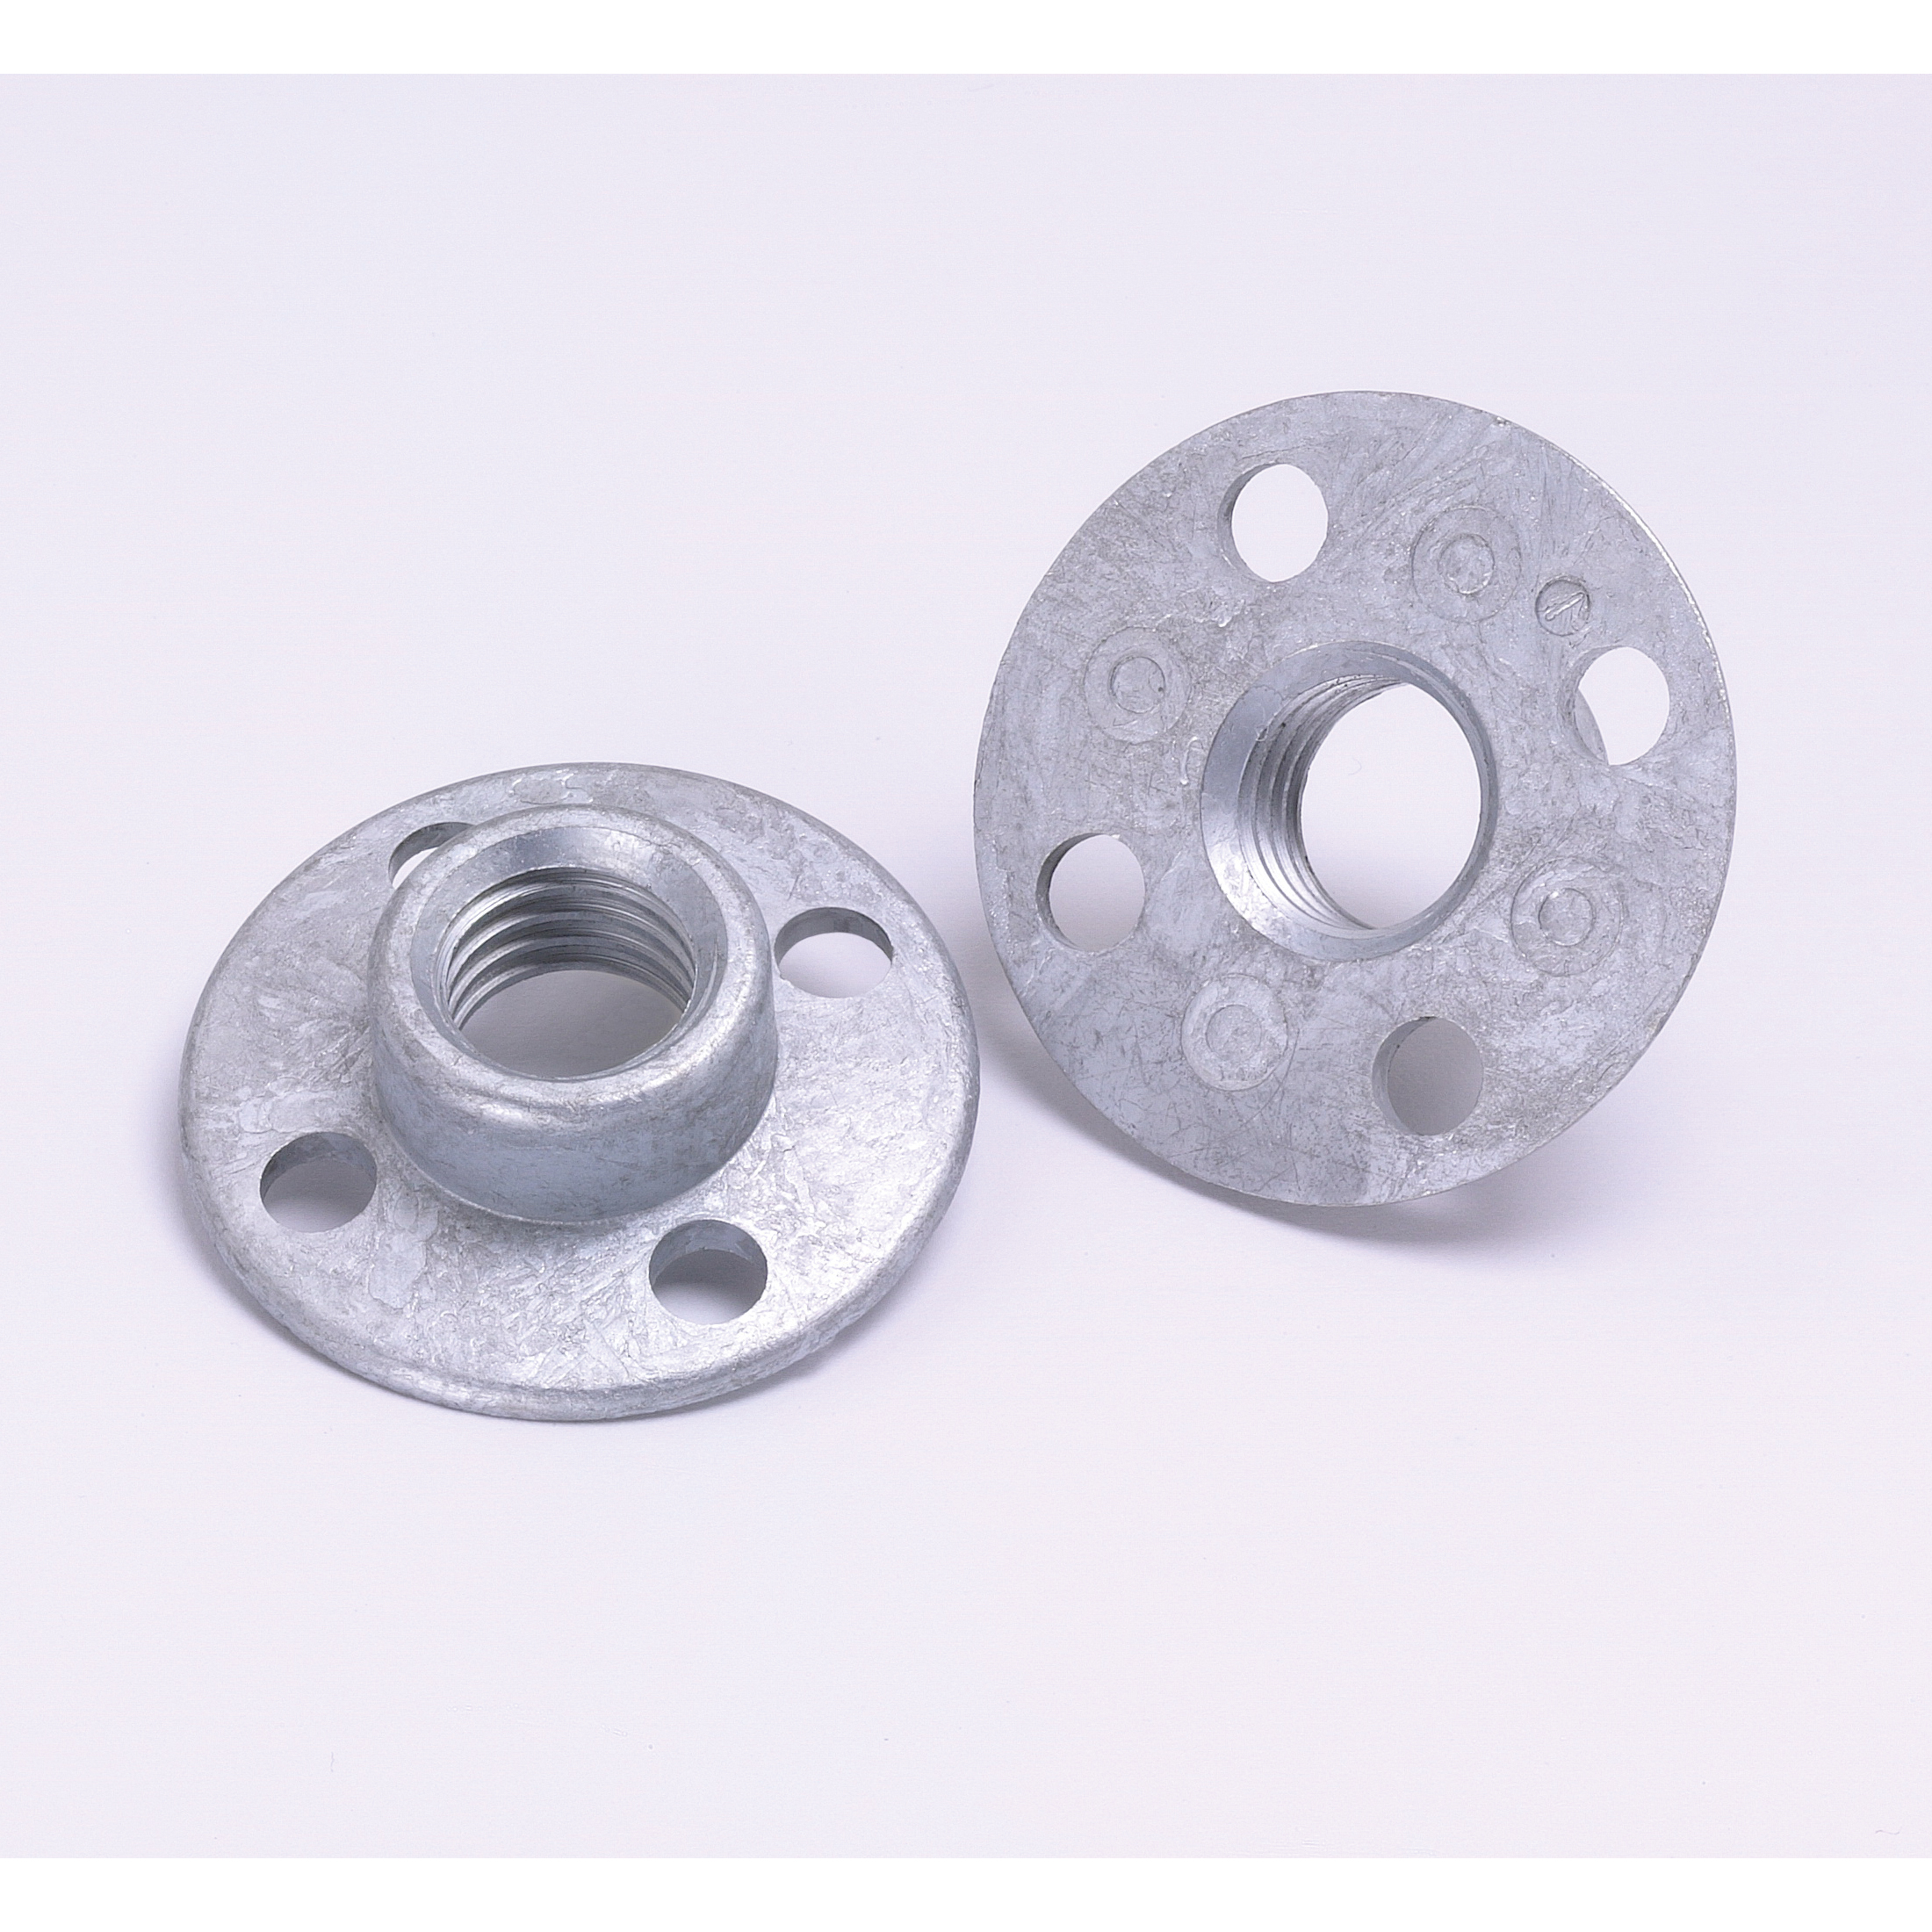 3M™ 051144-05621 Disc Retainer Nut, 1/2 in L, For Use With Disc Sander and Right Angle Grinder